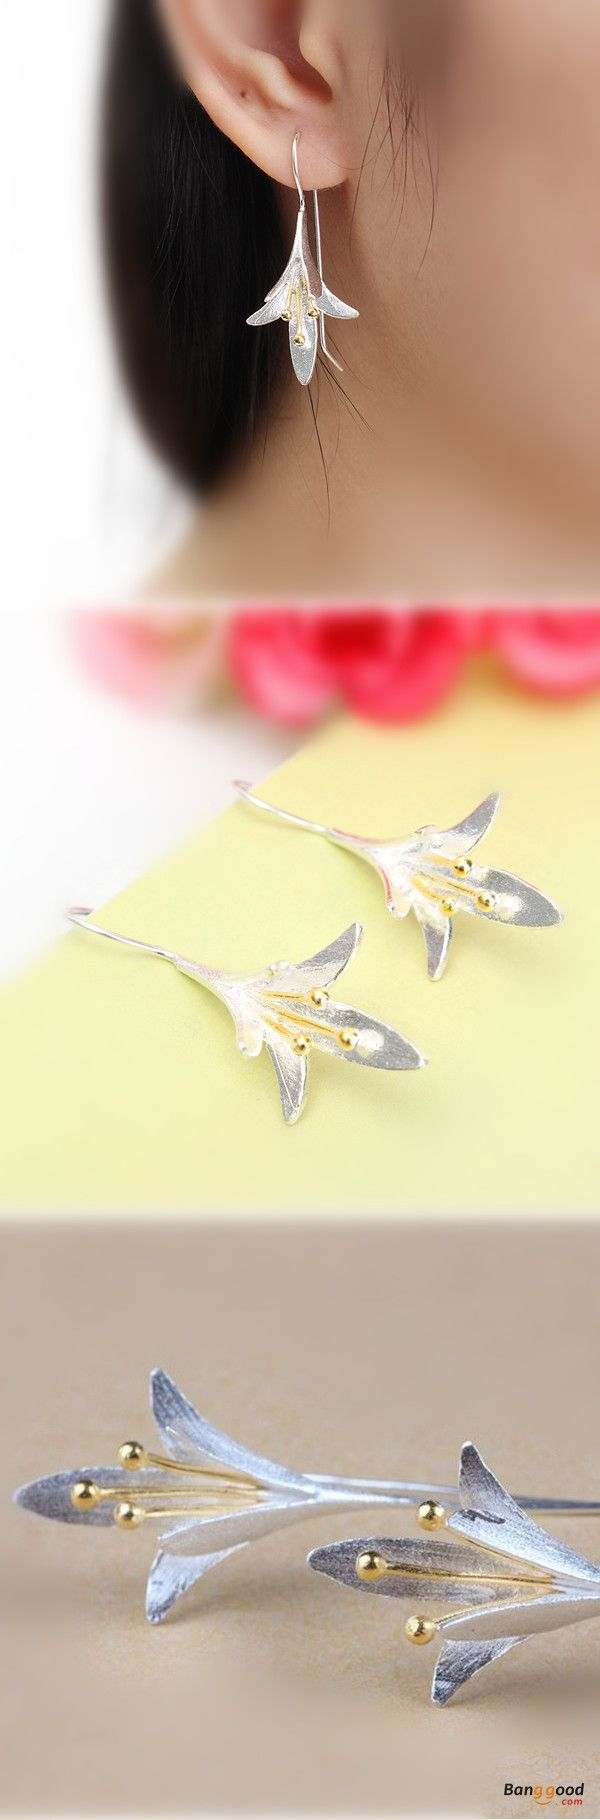 US$8.99+Free shipping. Material: S925 Silver. Color: Silver.  Fall in love with elegant and trendy style! Women's Jewelry, Women's Earrings, Women's Fashion, Christmas Accessories.